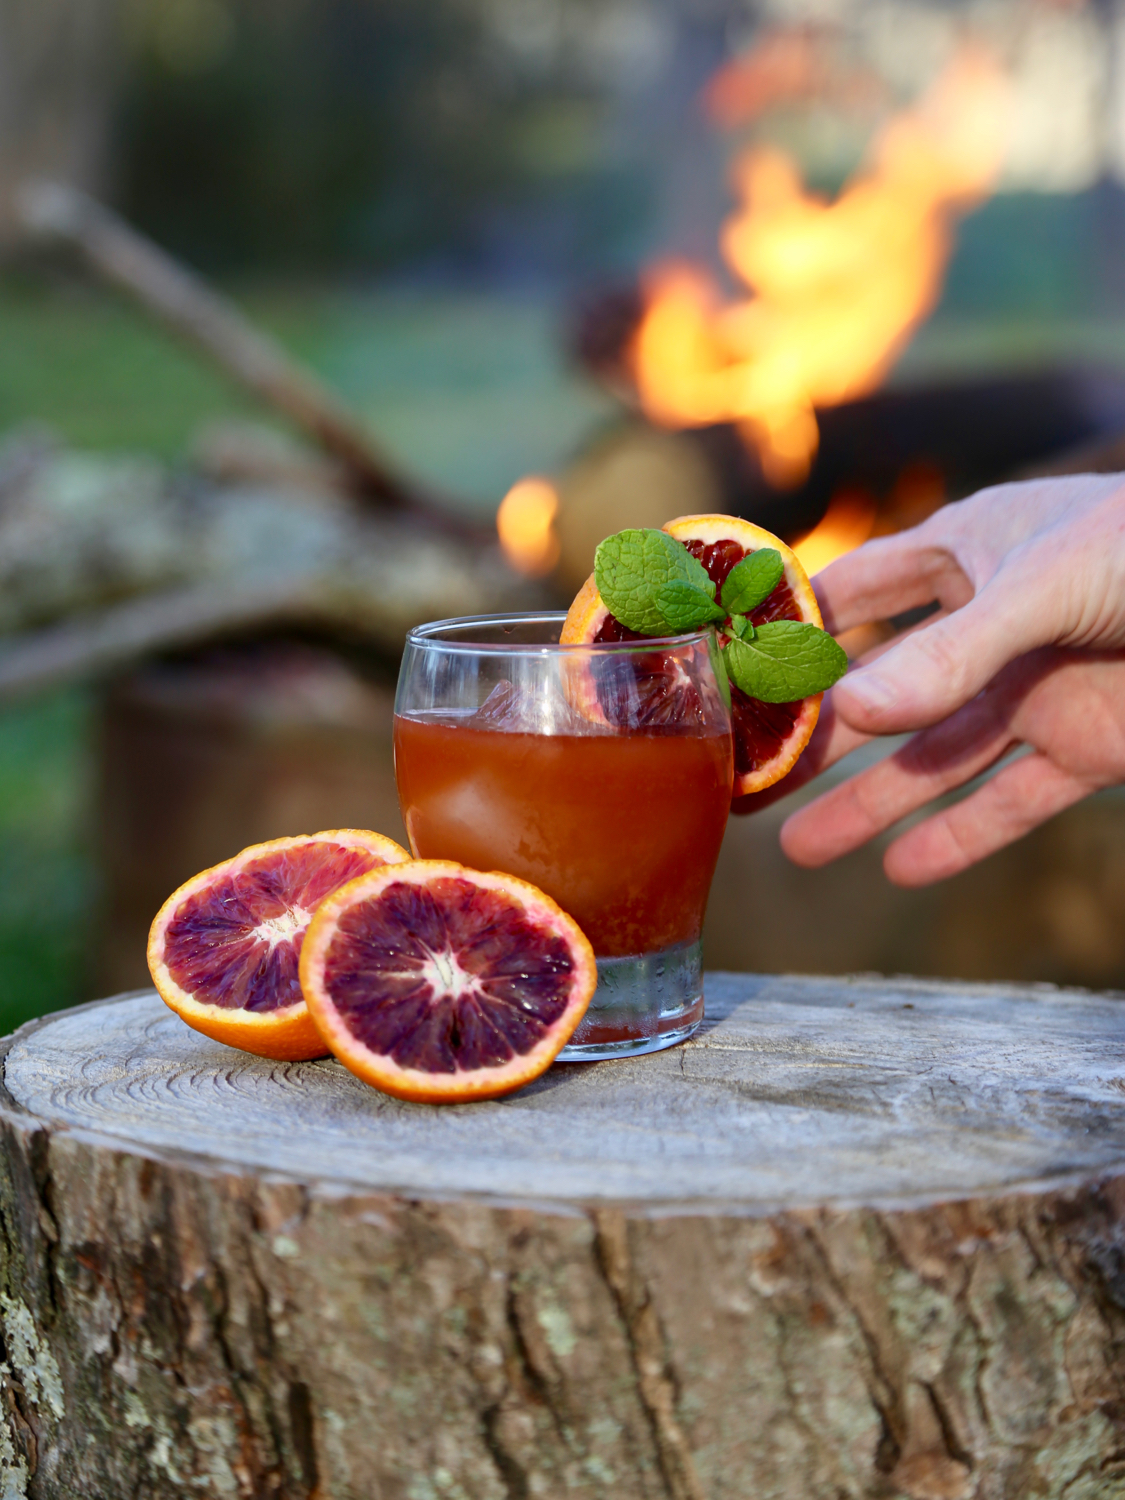 Hand reaching for a glass of blood orange cocktail with a fire in the background